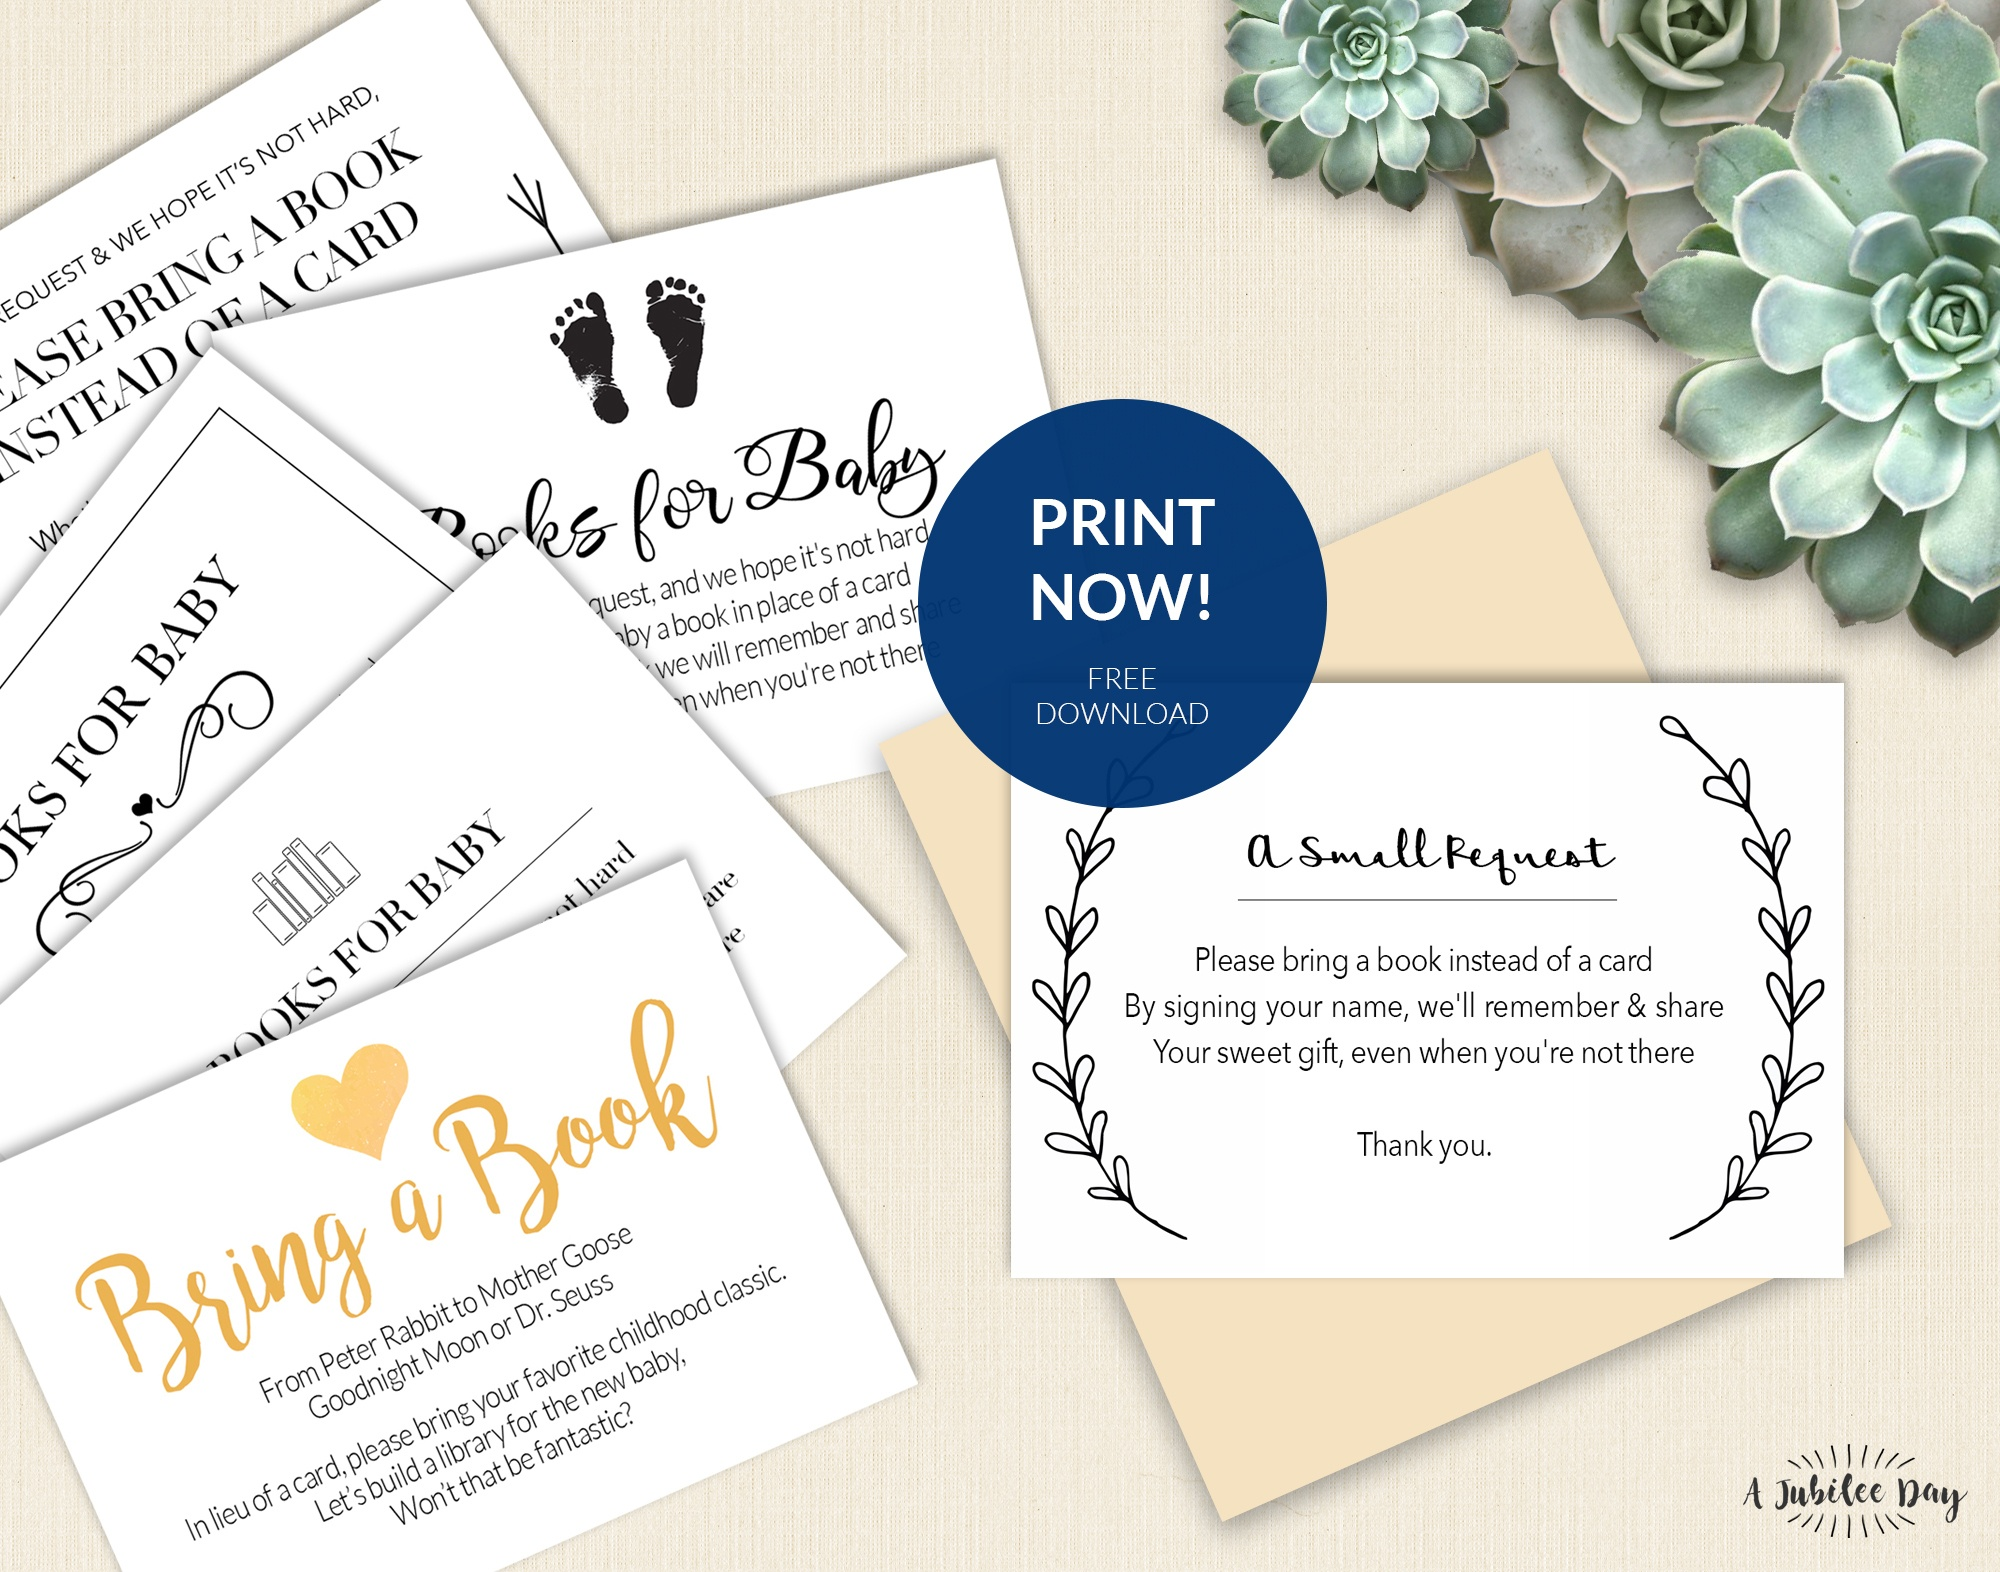 Bring A Book Instead Of Card (Free Printable!) - A Jubilee Day - Bring A Book Instead Of A Card Free Printable